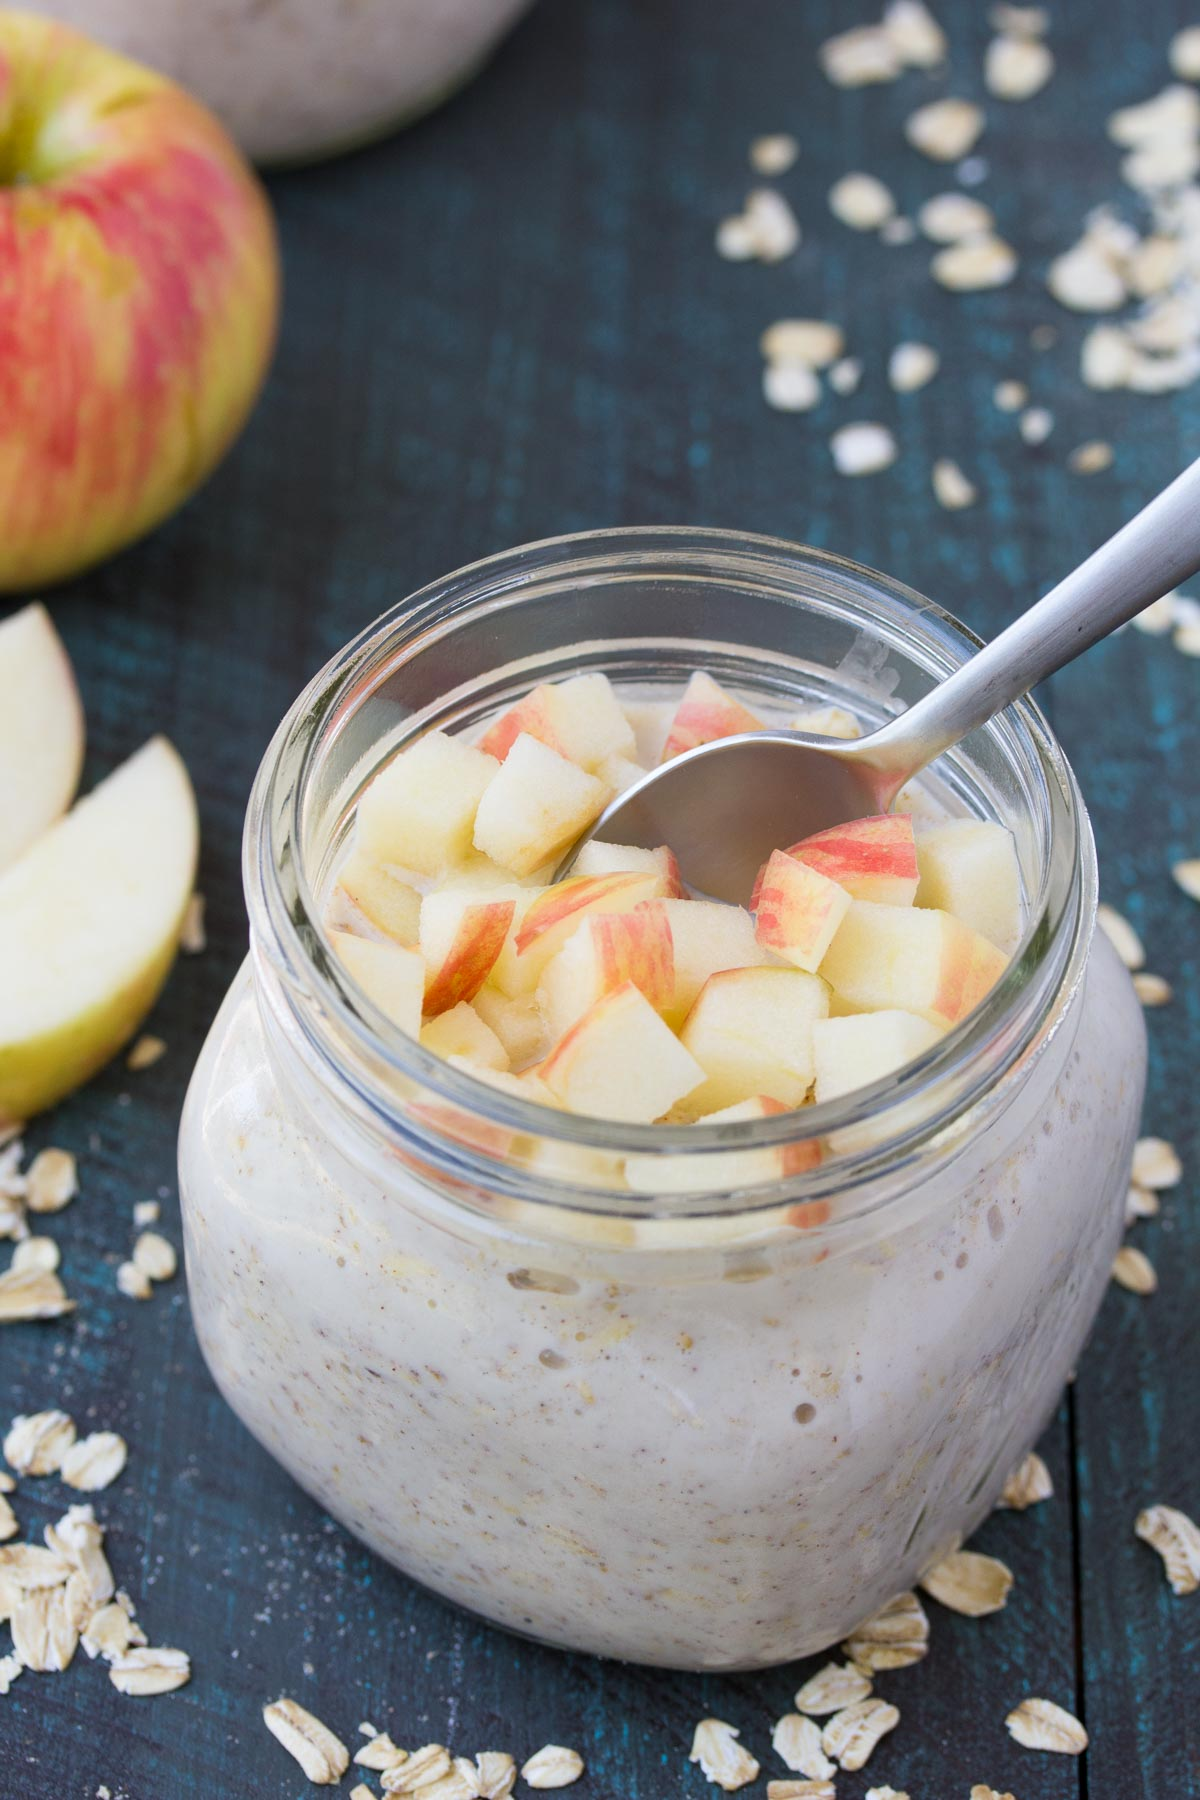 mason jar filled with overnight oats with a serving spoon